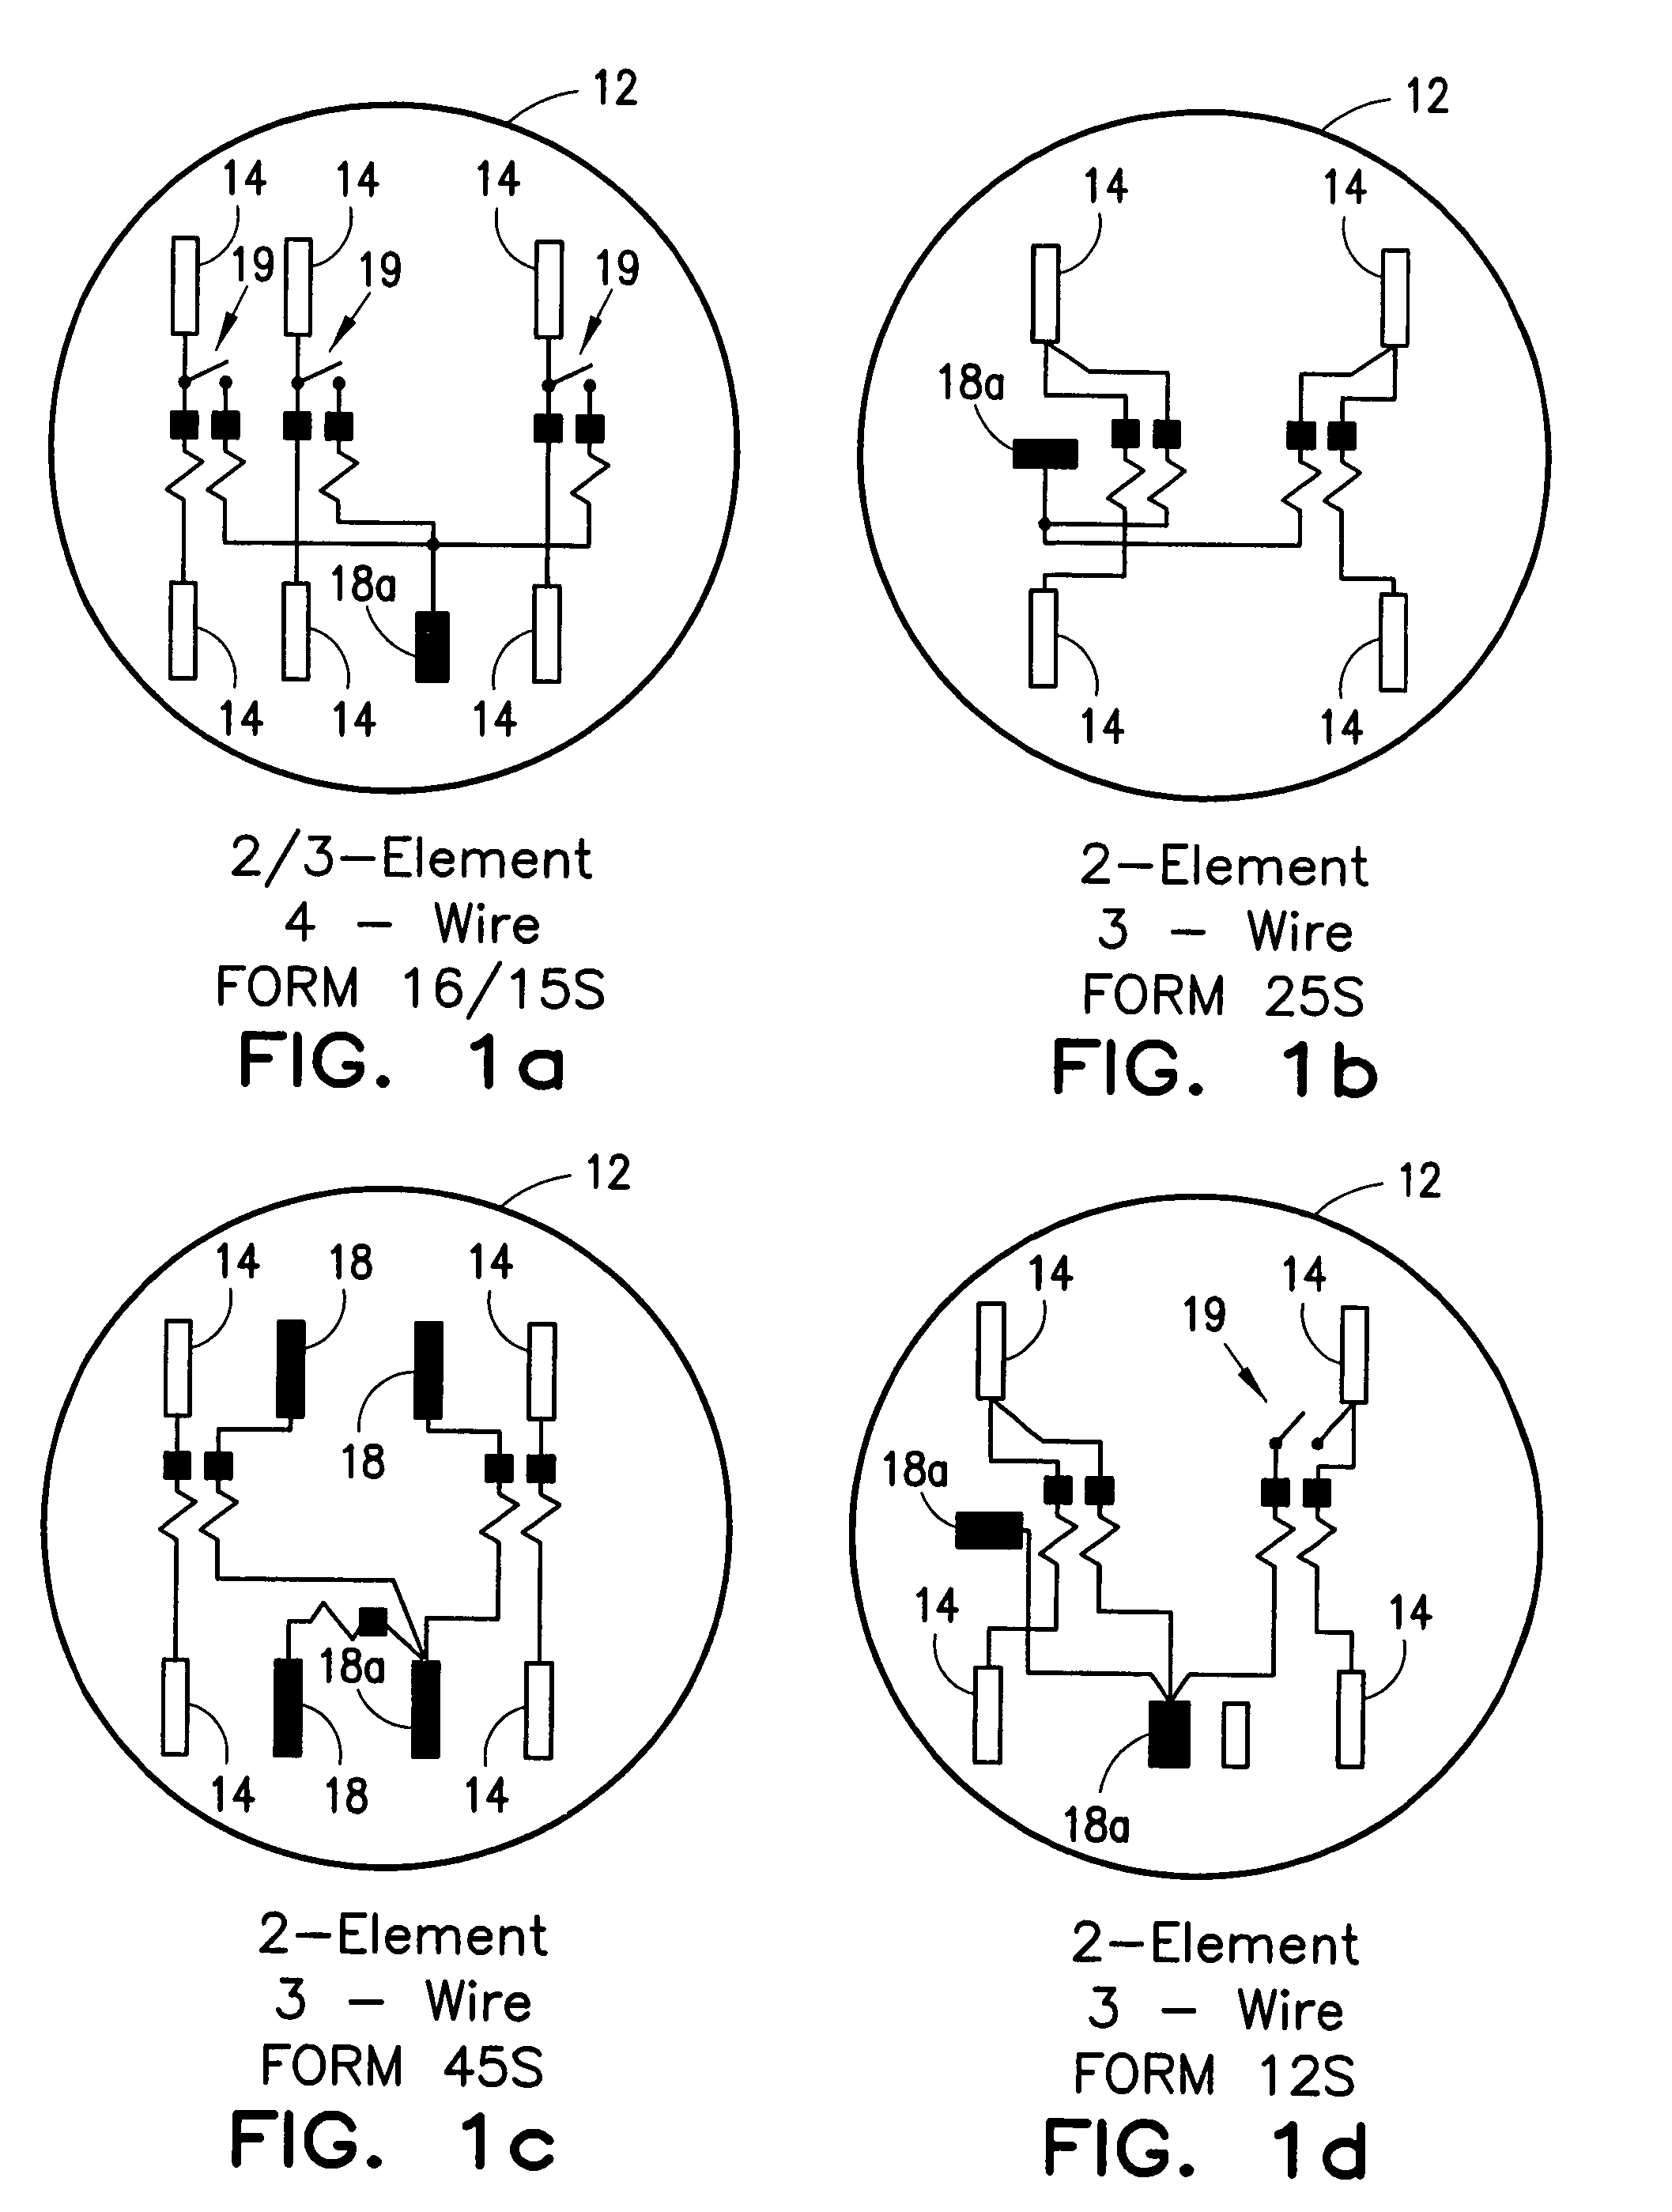 Wiring Meter Form Diagrams Source Ct Metering Diagram Pt Connection As Well Additionally 3s